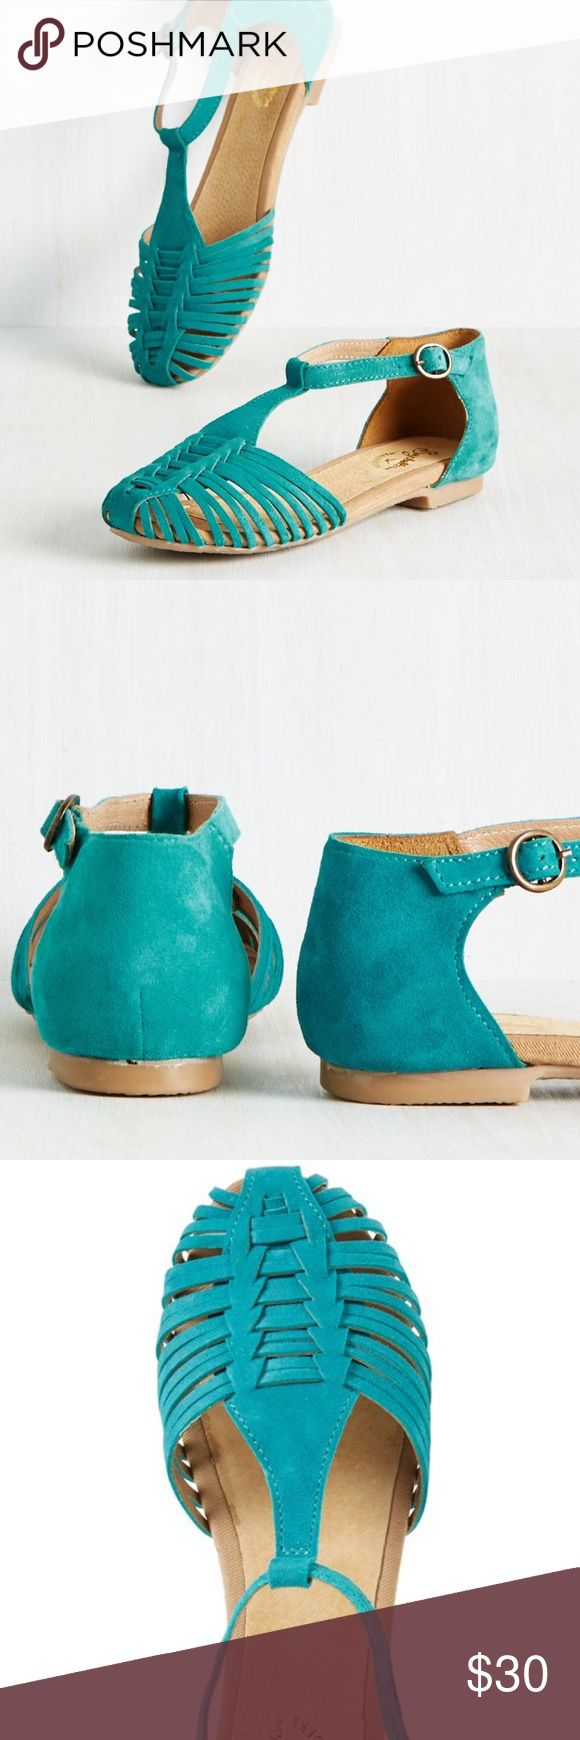 Seychelles Turquoise Flat Sandals New, still in packaging. Comes in original box. Seychelles Shoes Flats & Loafers